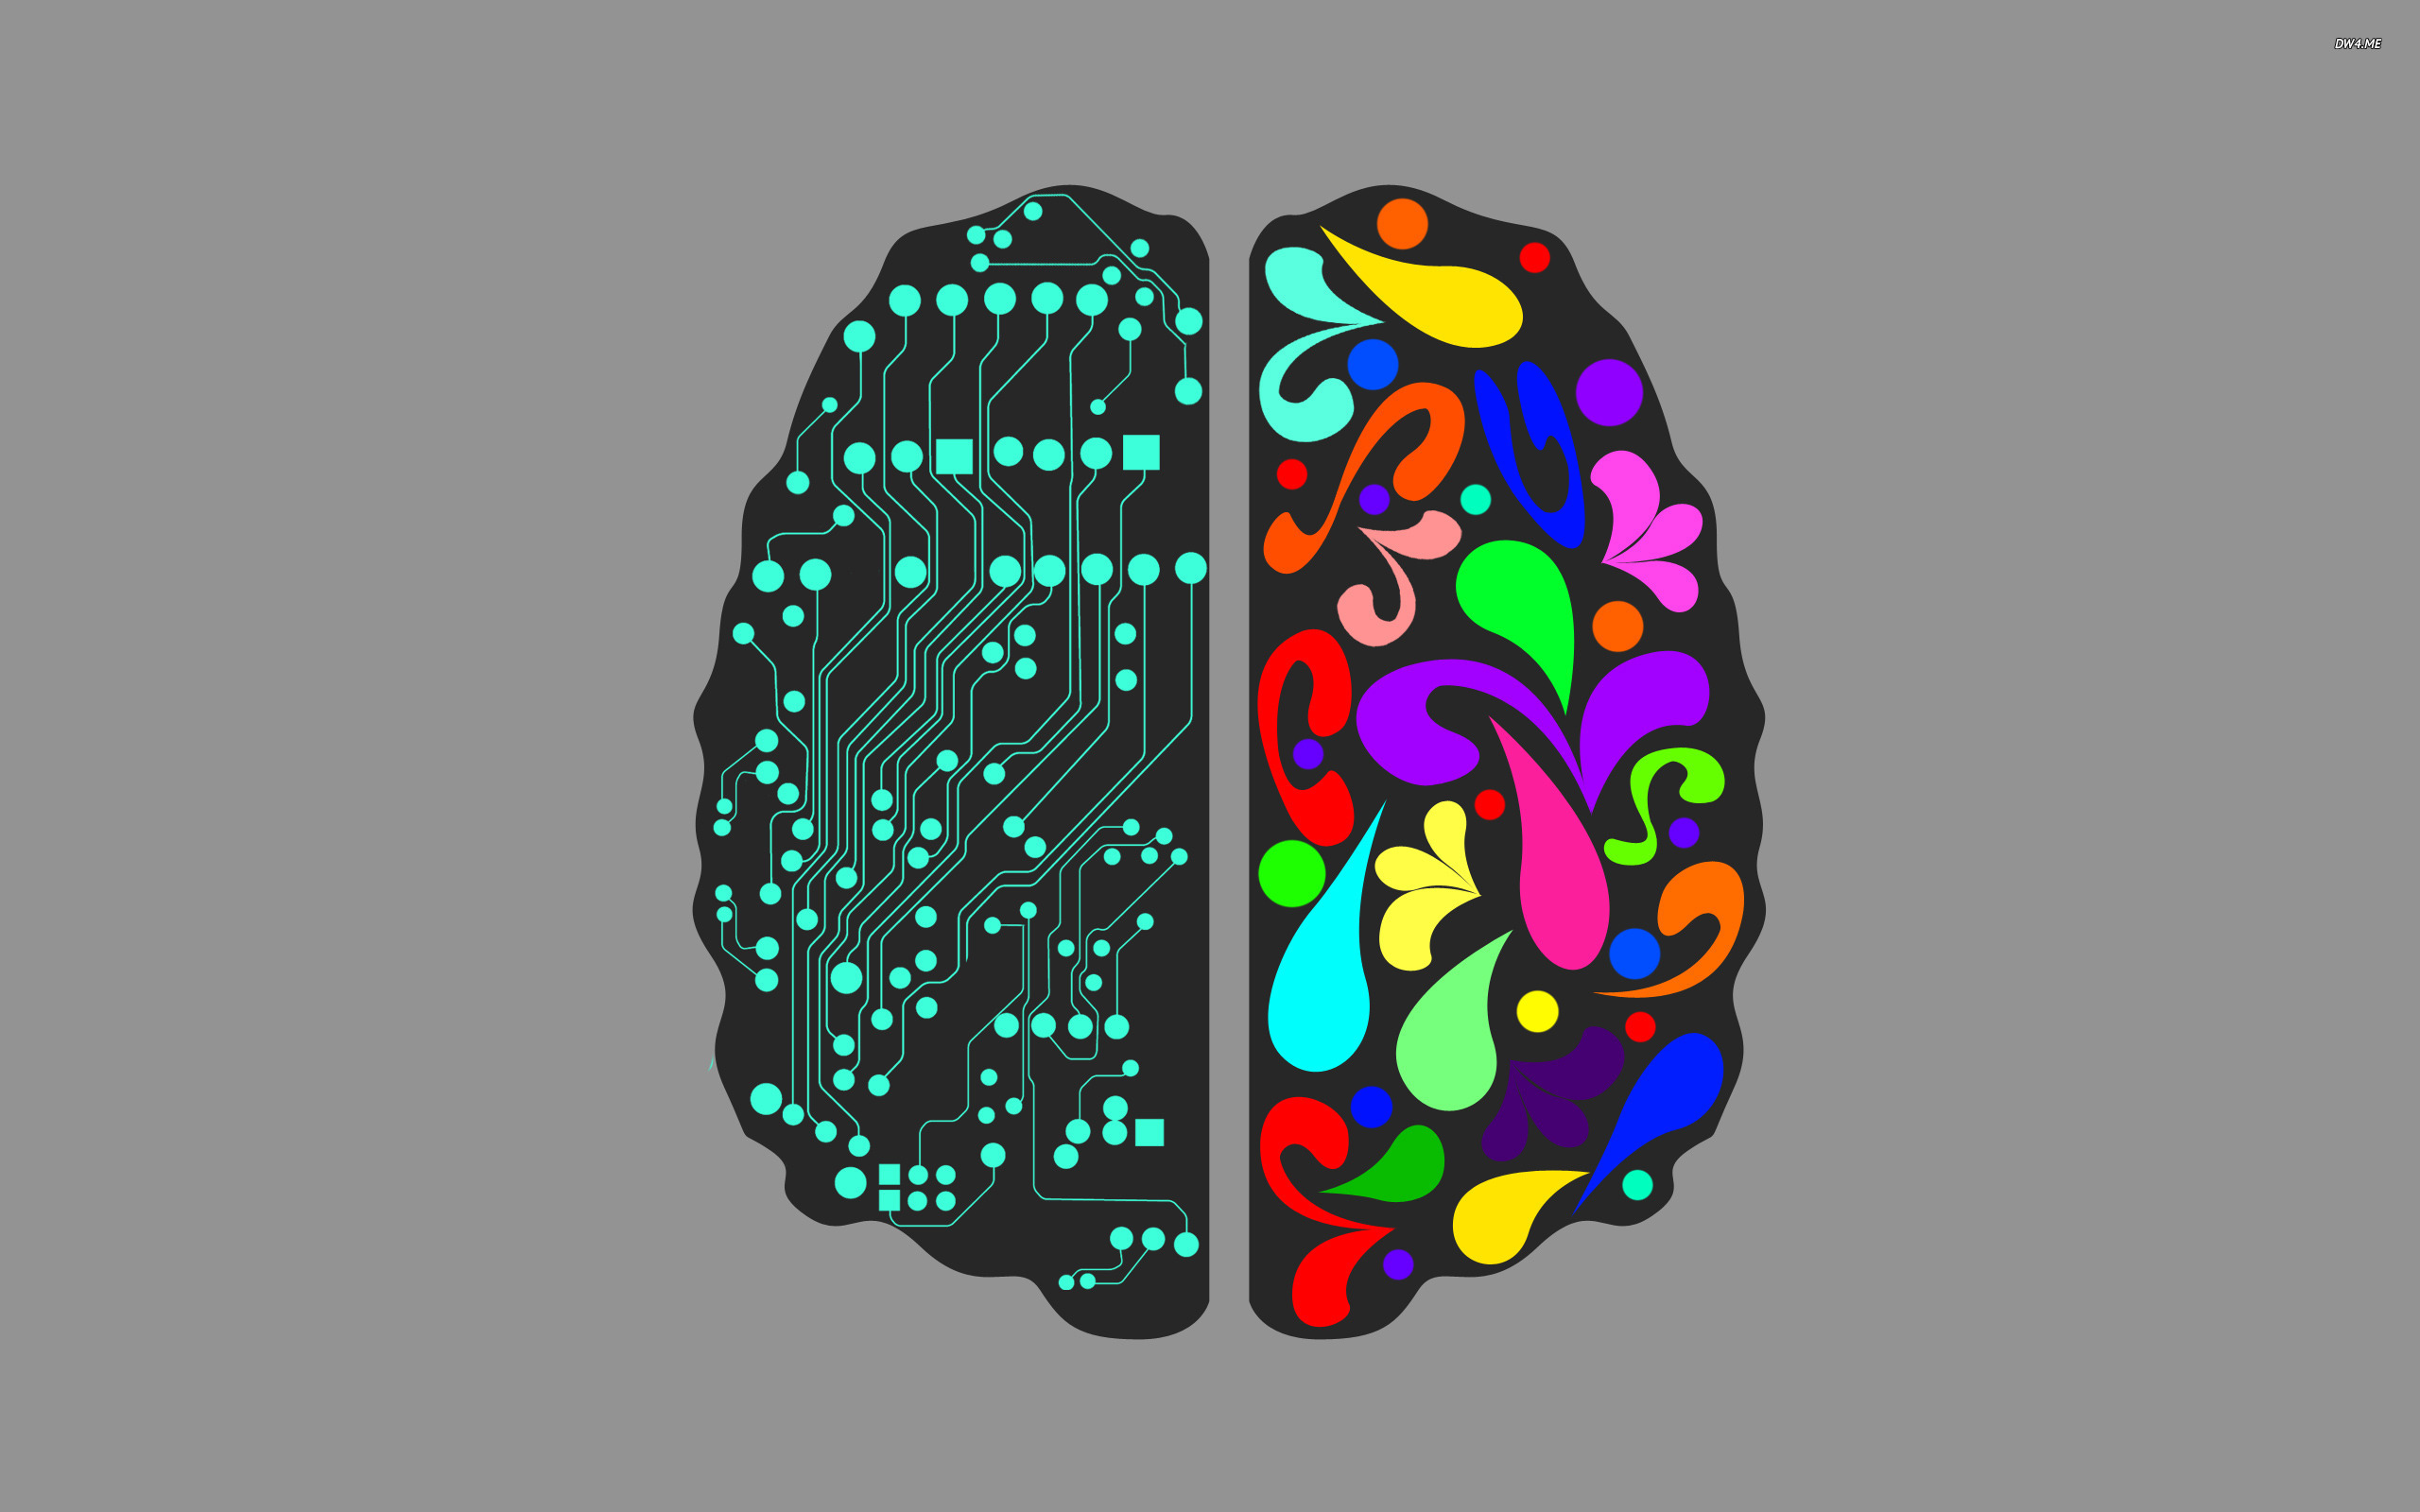 820-logical-and-creative-brain-hemispheres-2560x1600-vector-wallpaper